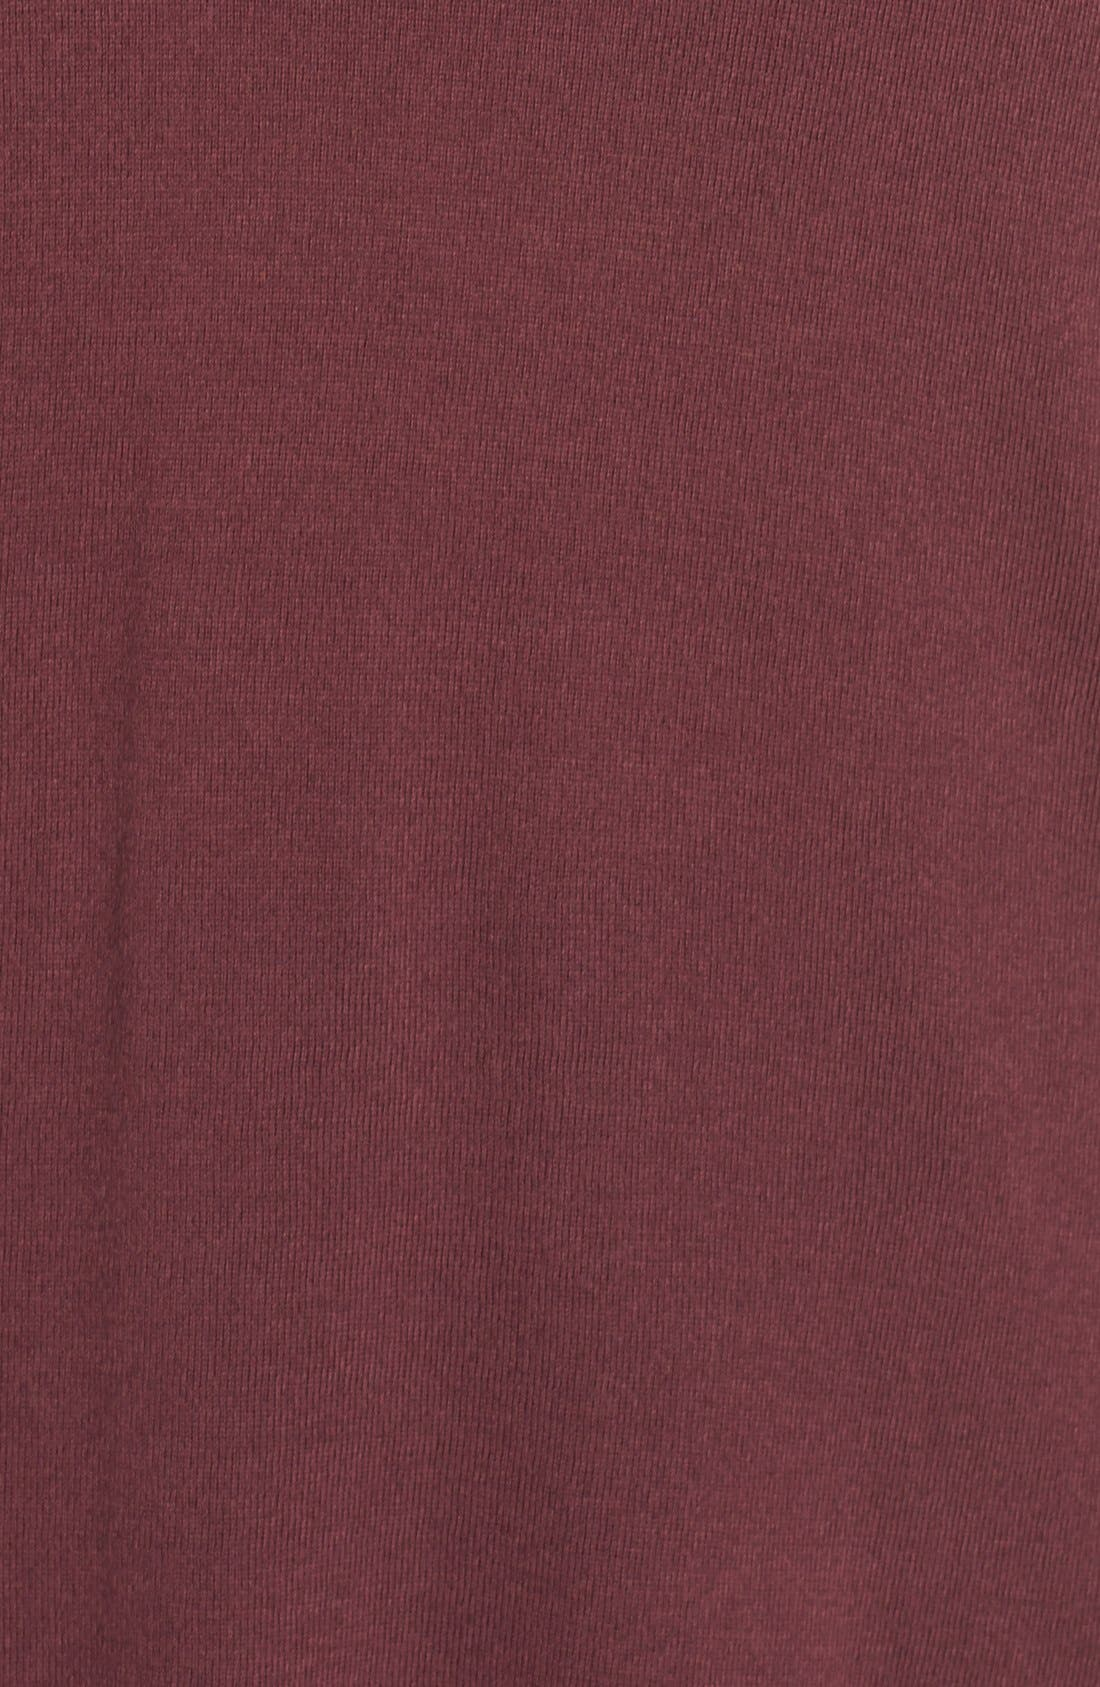 Cowl Neck Tunic Sweater,                             Alternate thumbnail 45, color,